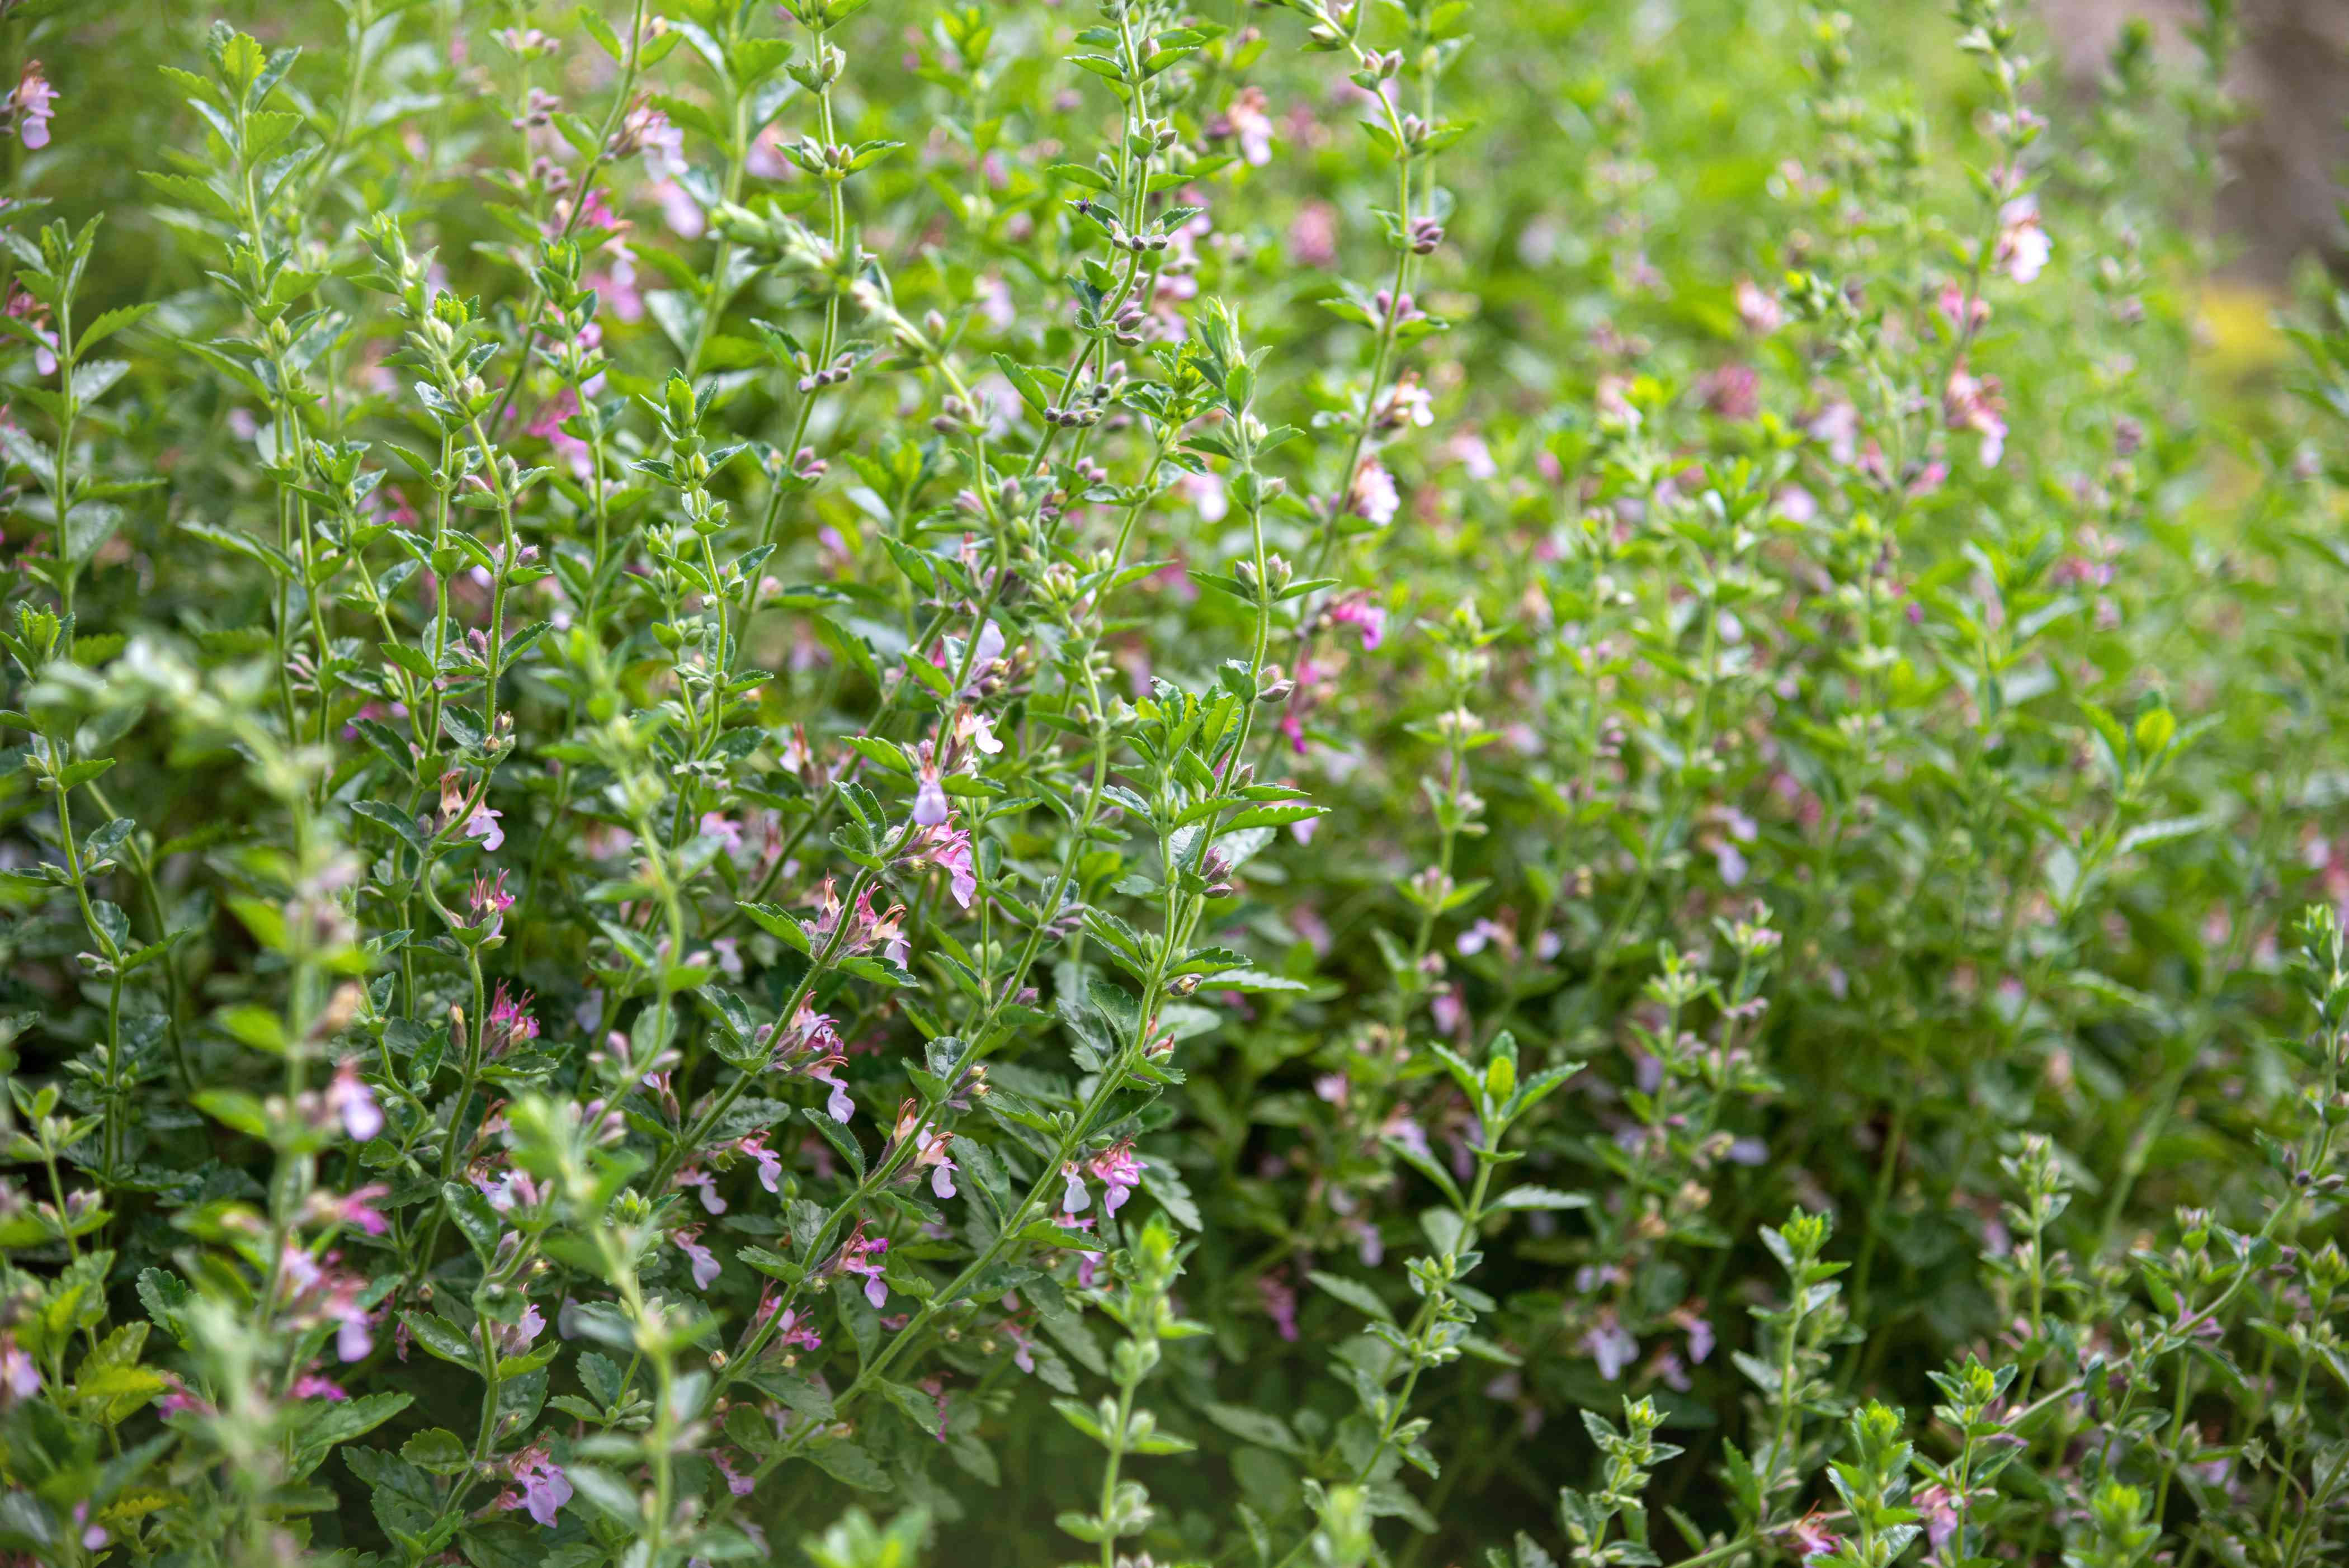 Wall germander plant with thin stems, tiny light purple flowers and small tooth edged leaves